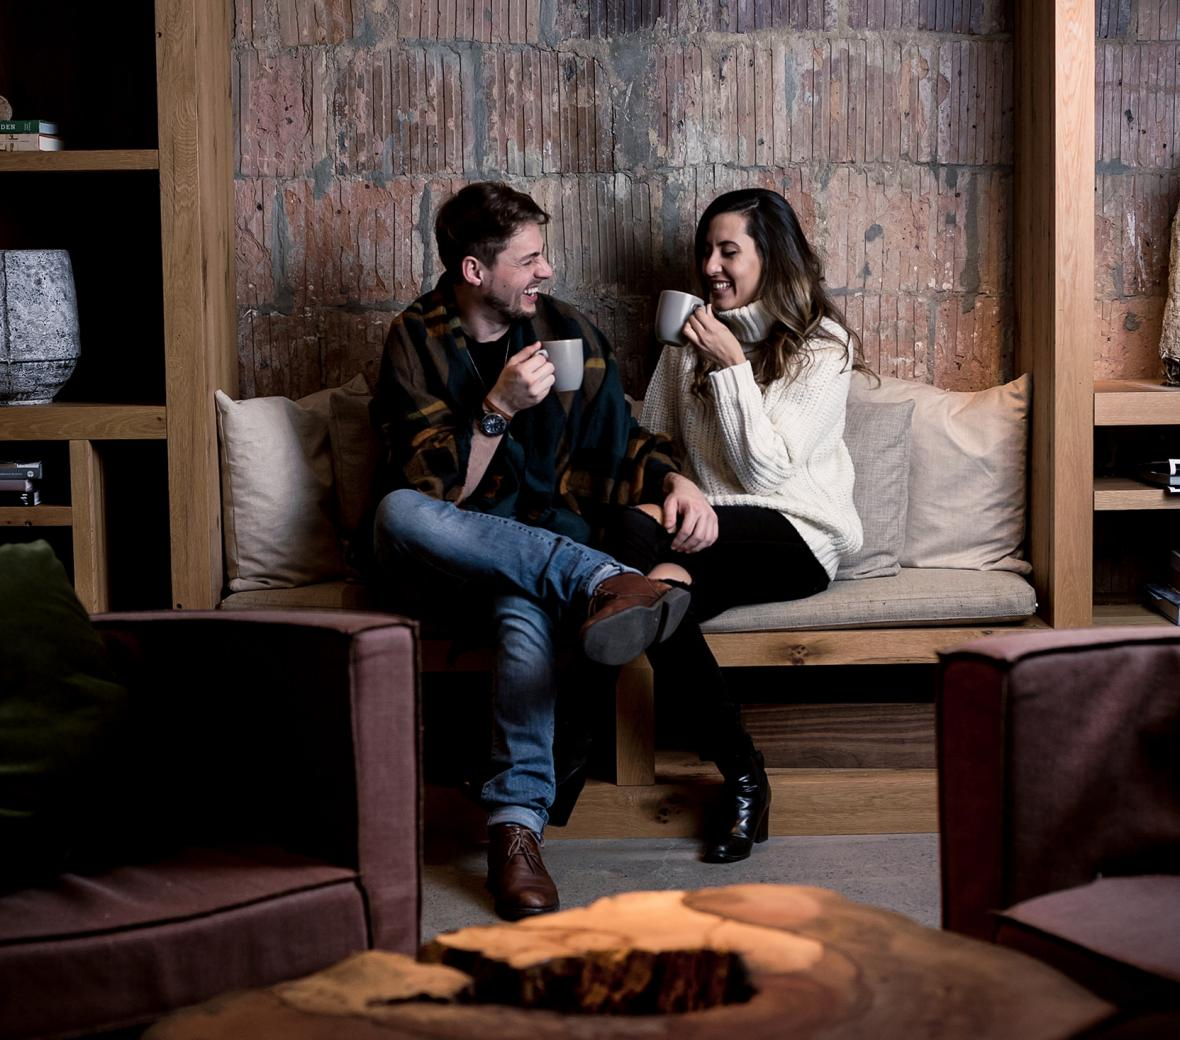 Couple on couch drinking coffee